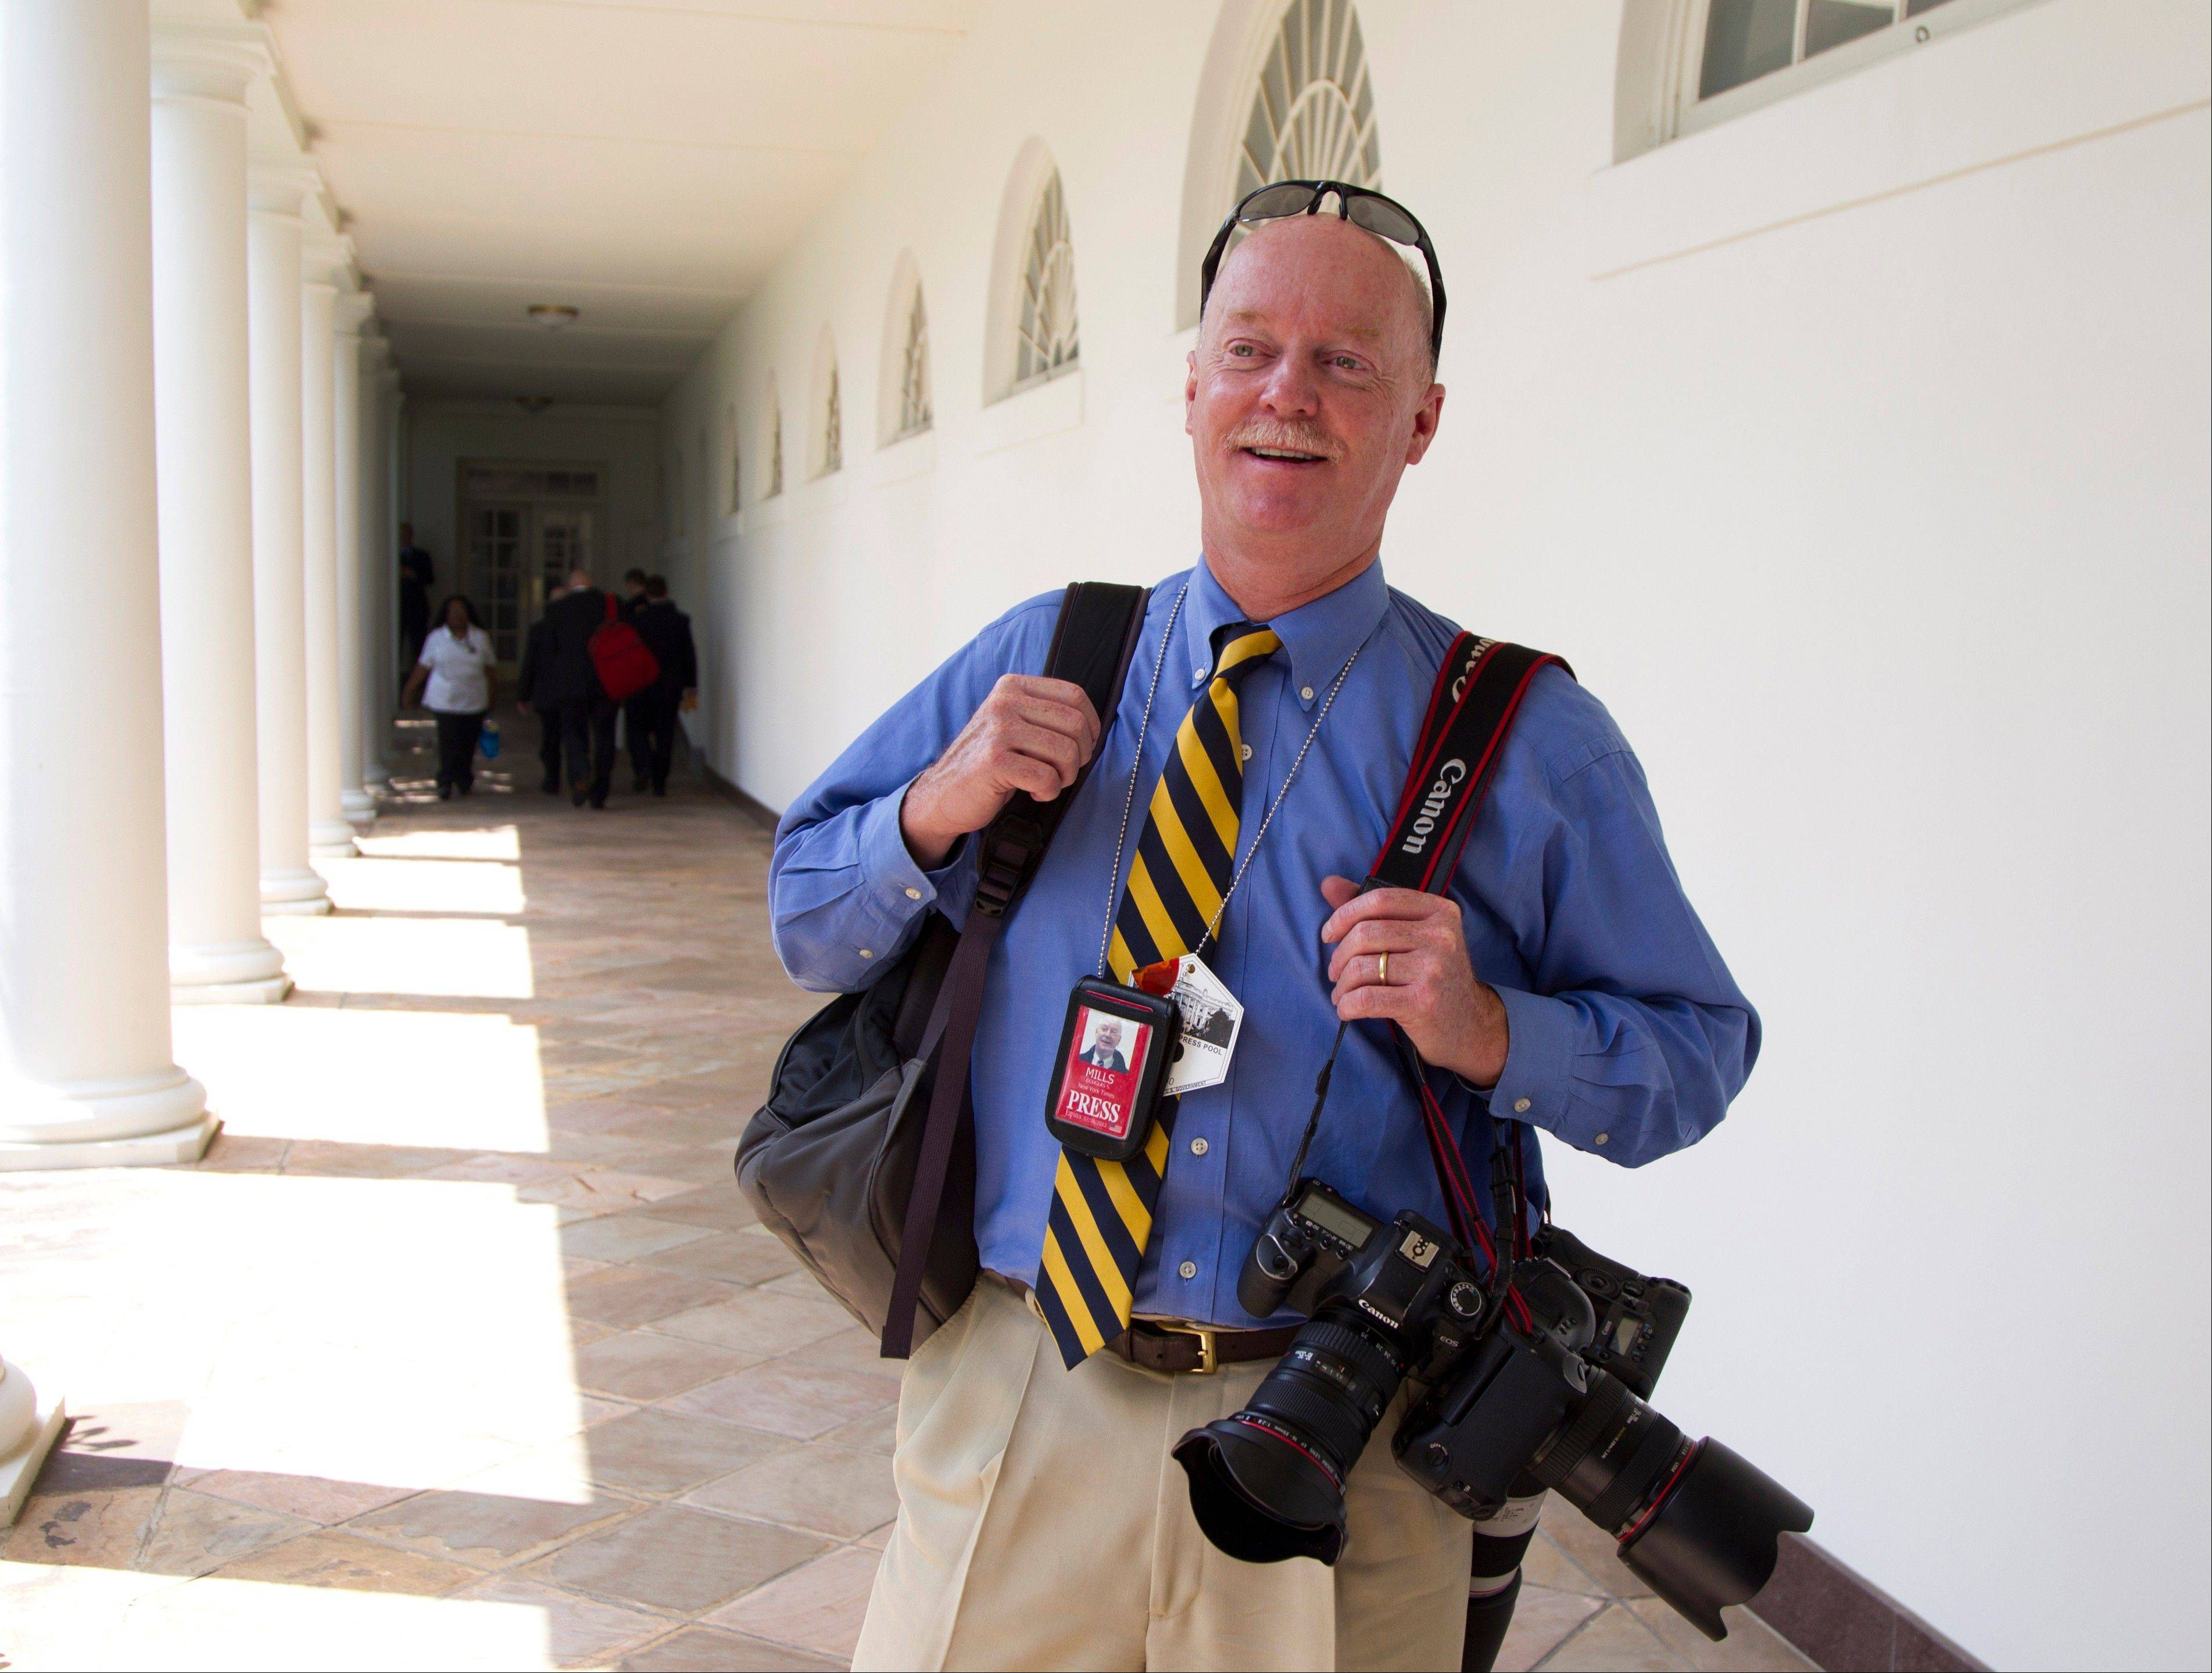 "For former Associated Press photographer Doug Mills, Sept. 11, 2001, started out like most days covering President George W. Bush on the road. It was only after Mills and other journalists boarded Air Force One and began watching the live CNN news feed that the full import of that morning's schoolroom event came into focus. A visit that had started out as a routine ""photo-op,"" was now a moment in history."